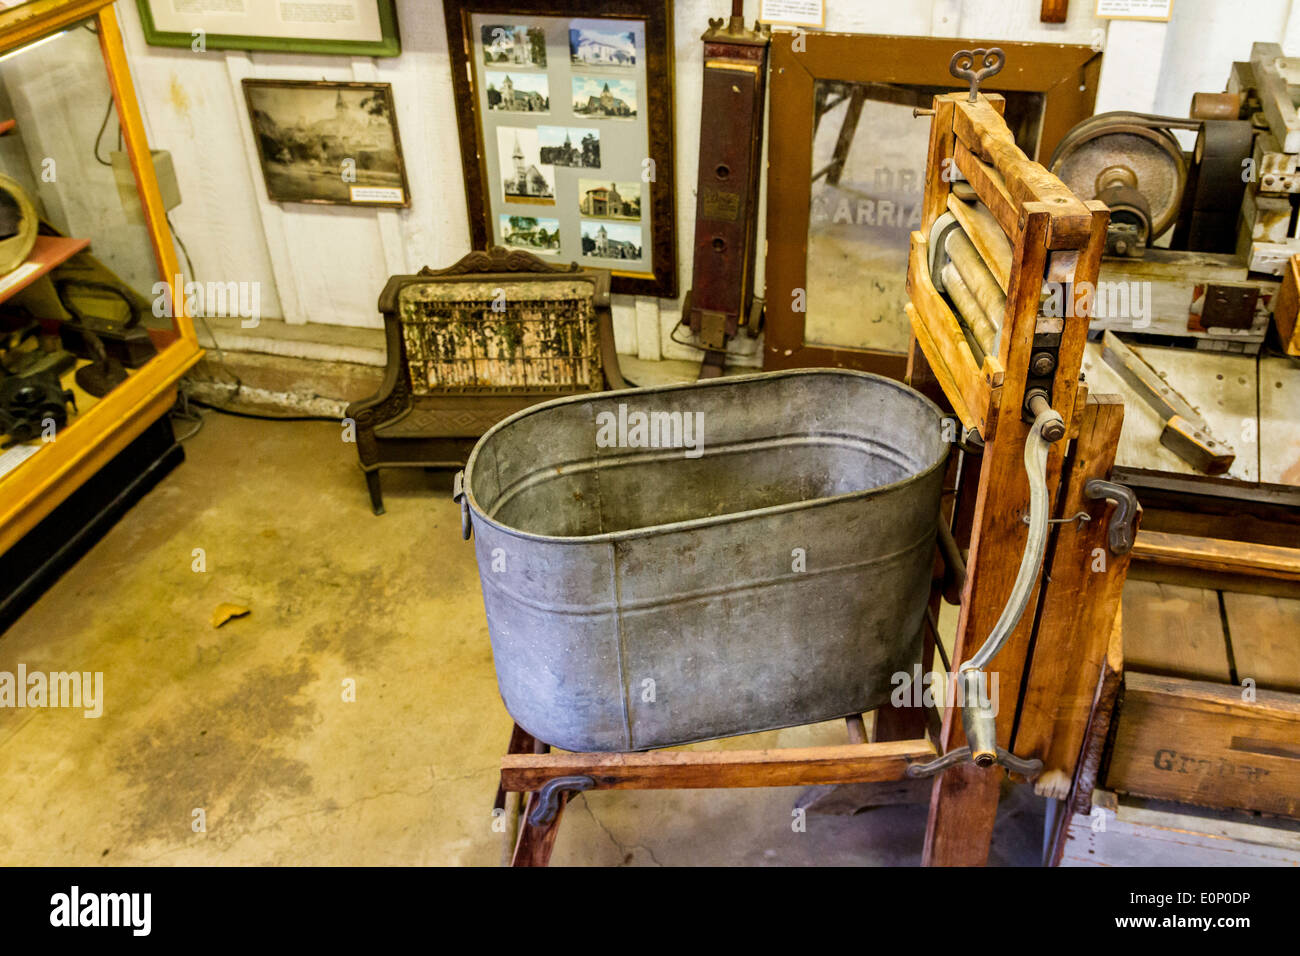 Graber Olive house in Ontario California Stock Photo: 69324802 - Alamy